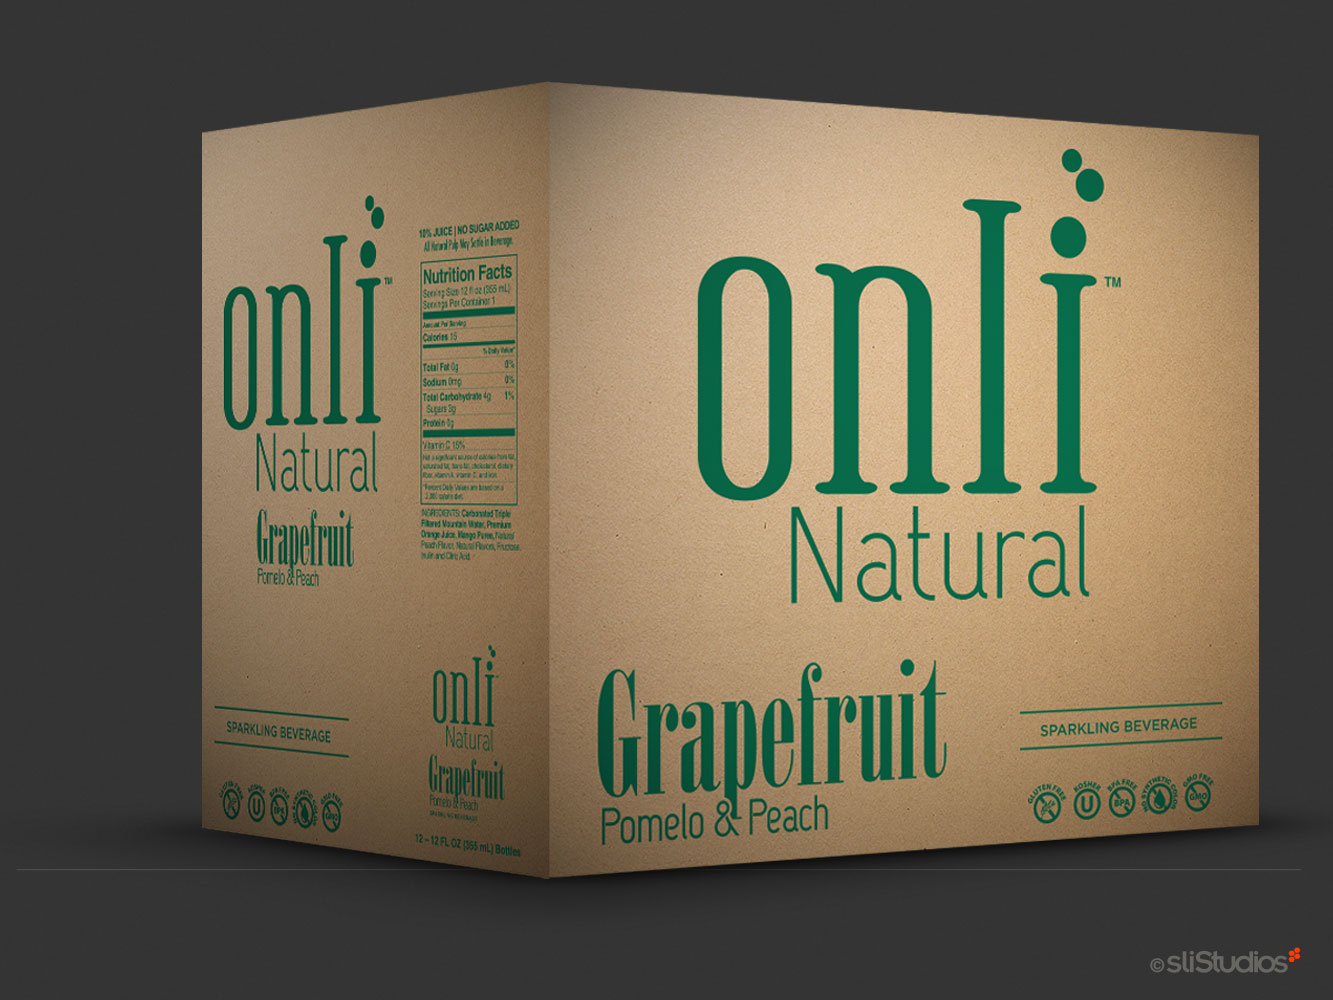 Onli Natural Product Packaging